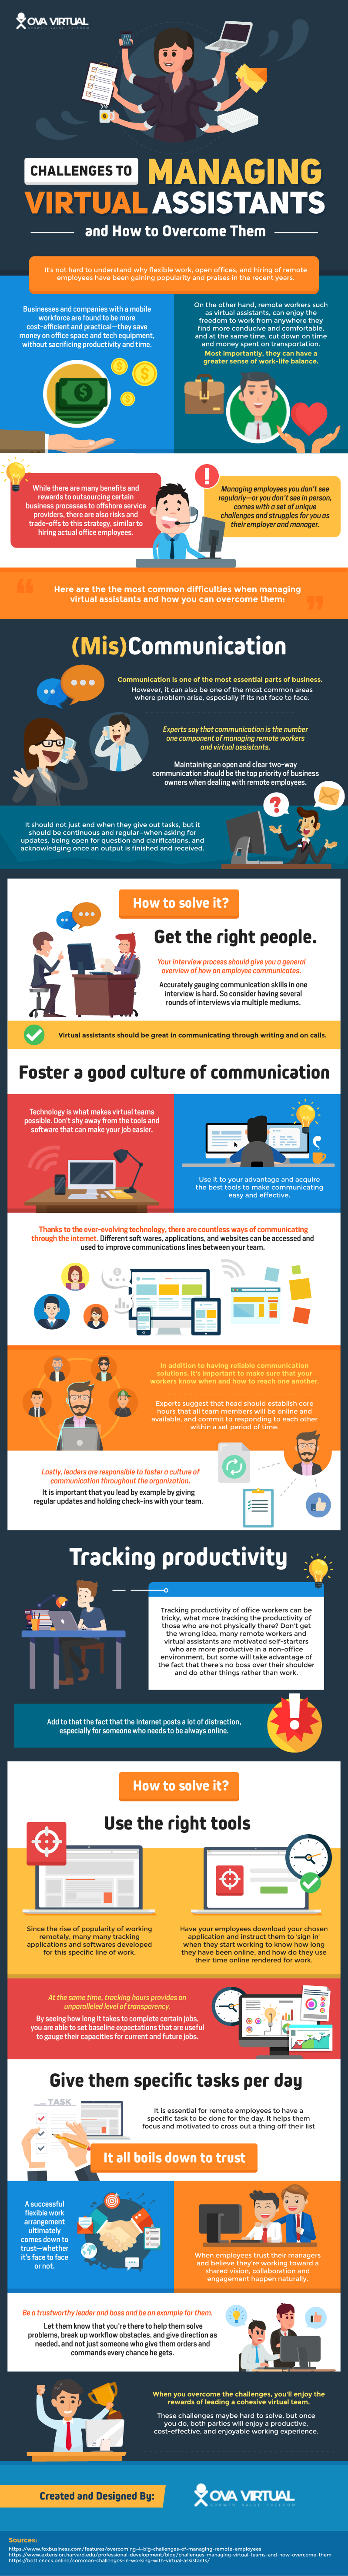 Challenges to Managing Virtual Assistants and How to Overcome Them - Infographic